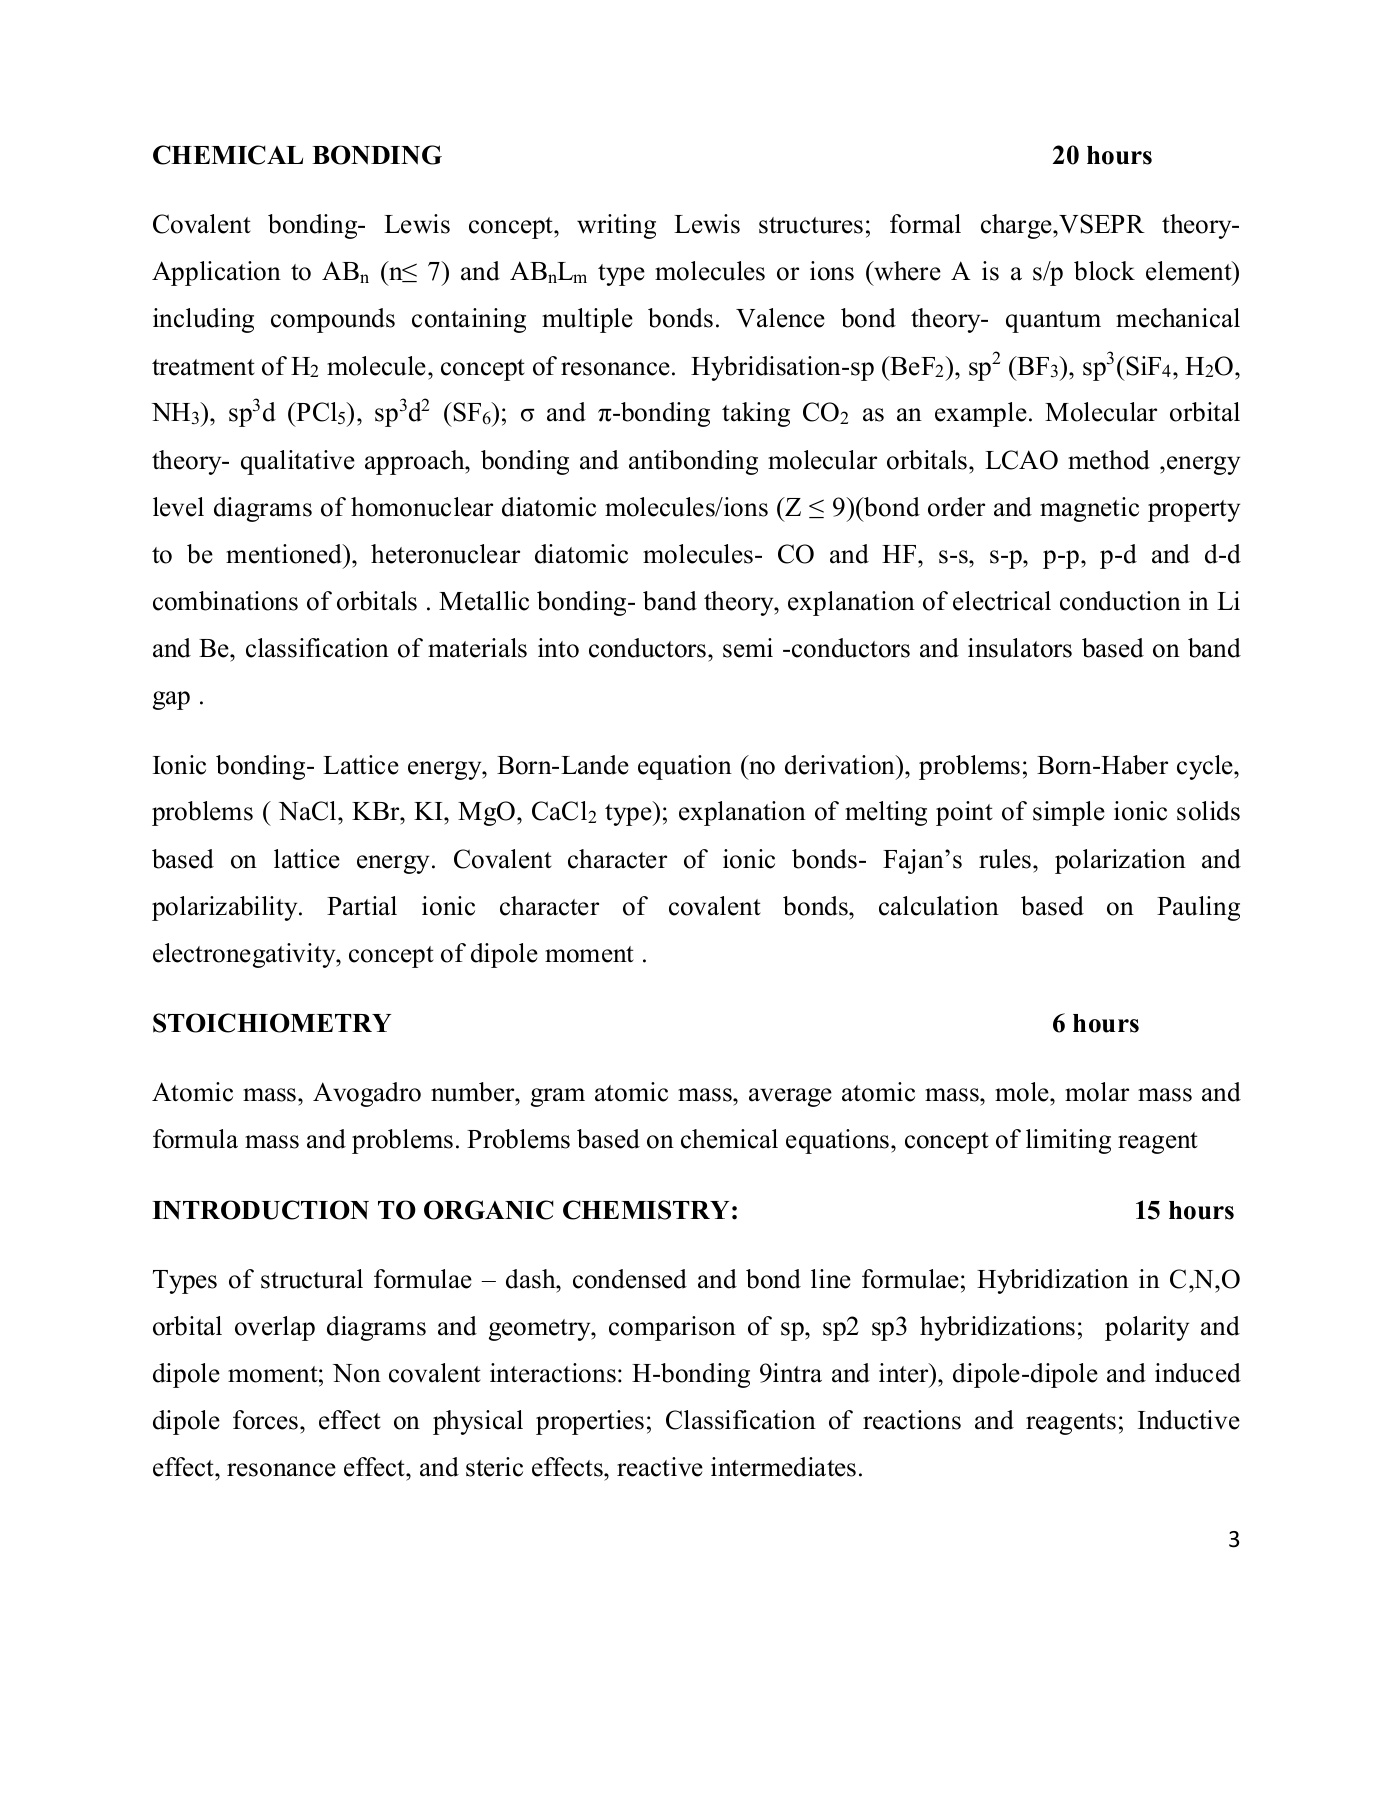 bsc15-18 Pages 1 - 44 - Text Version   AnyFlip